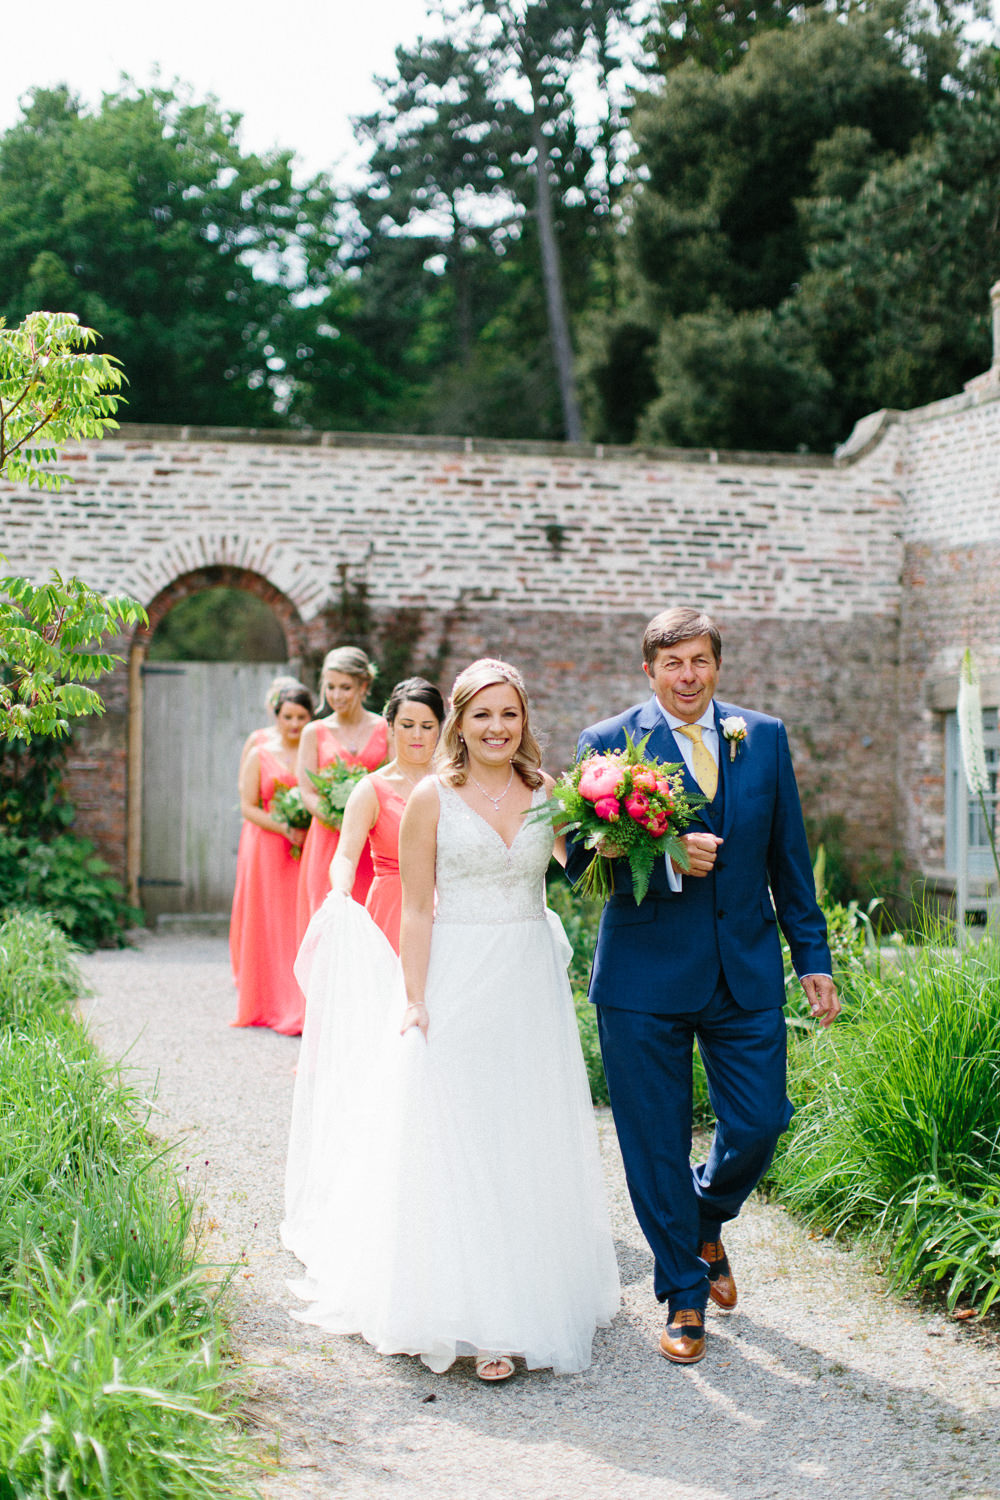 Bride Bridal Dress Sleeveless A Line Beaded Embellished V Neck Tiara Blue Suit Waistcoat Veil Coral Bridesmaids Garden Ceremony Wedding Melissa Beattie Photography